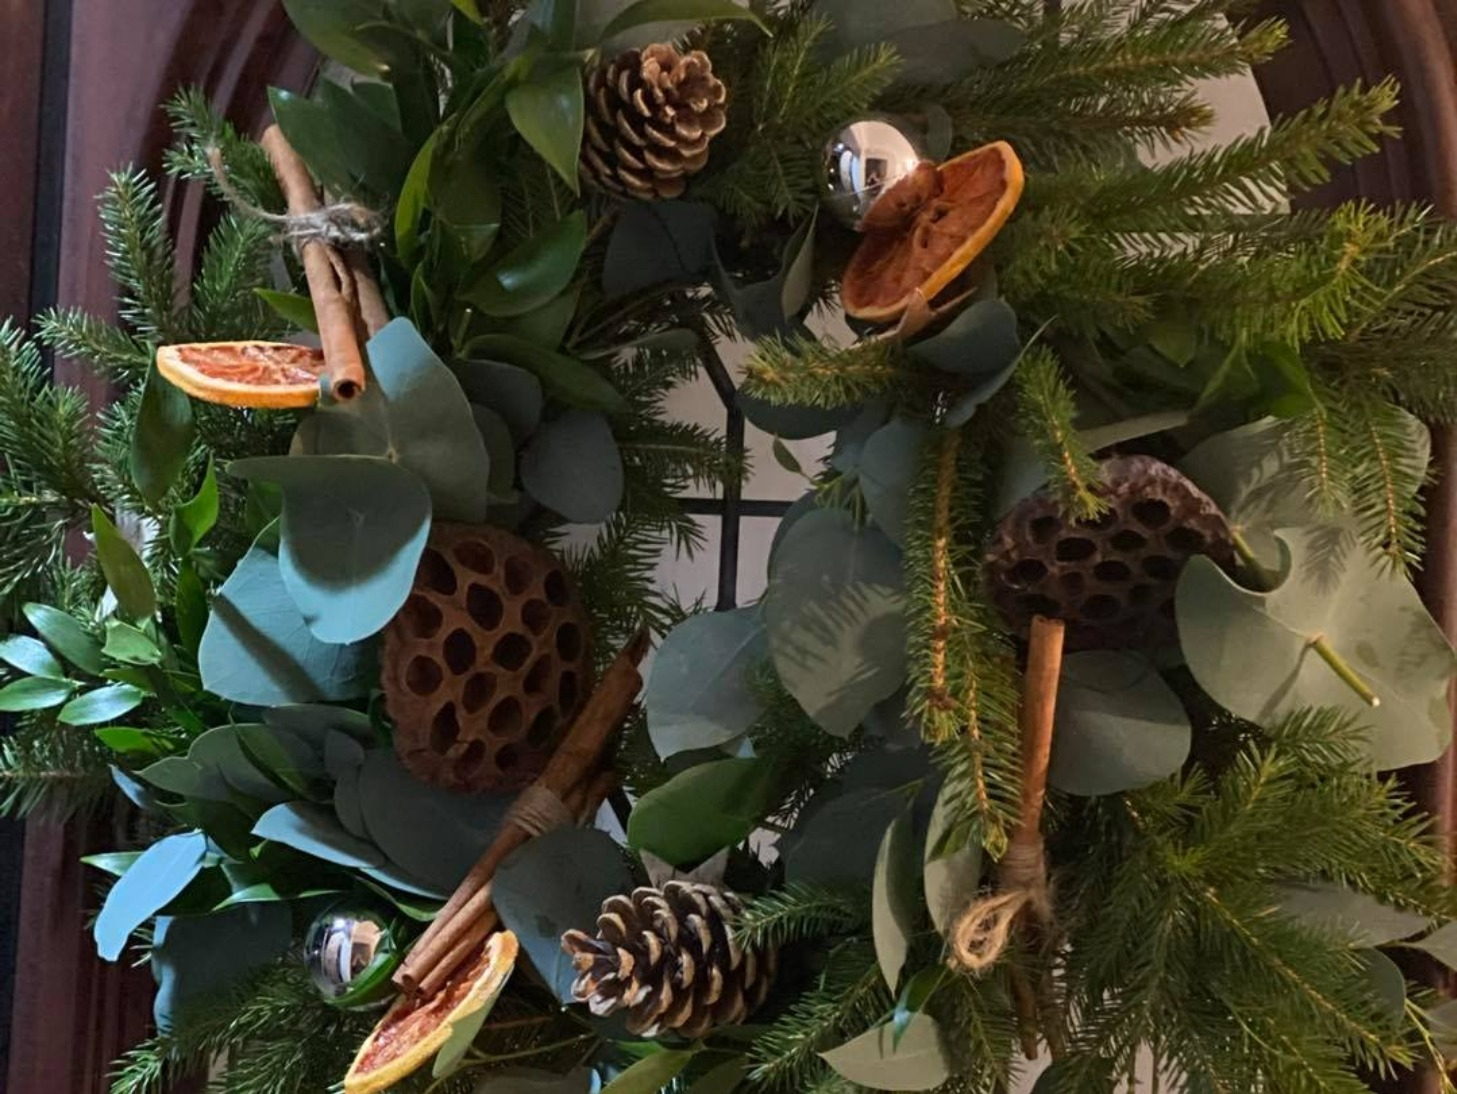 Festive Afternoon Tea and Wreath Making (Thursday 9th December Workshop Room 1: 3pm-6pm) DEPOSIT